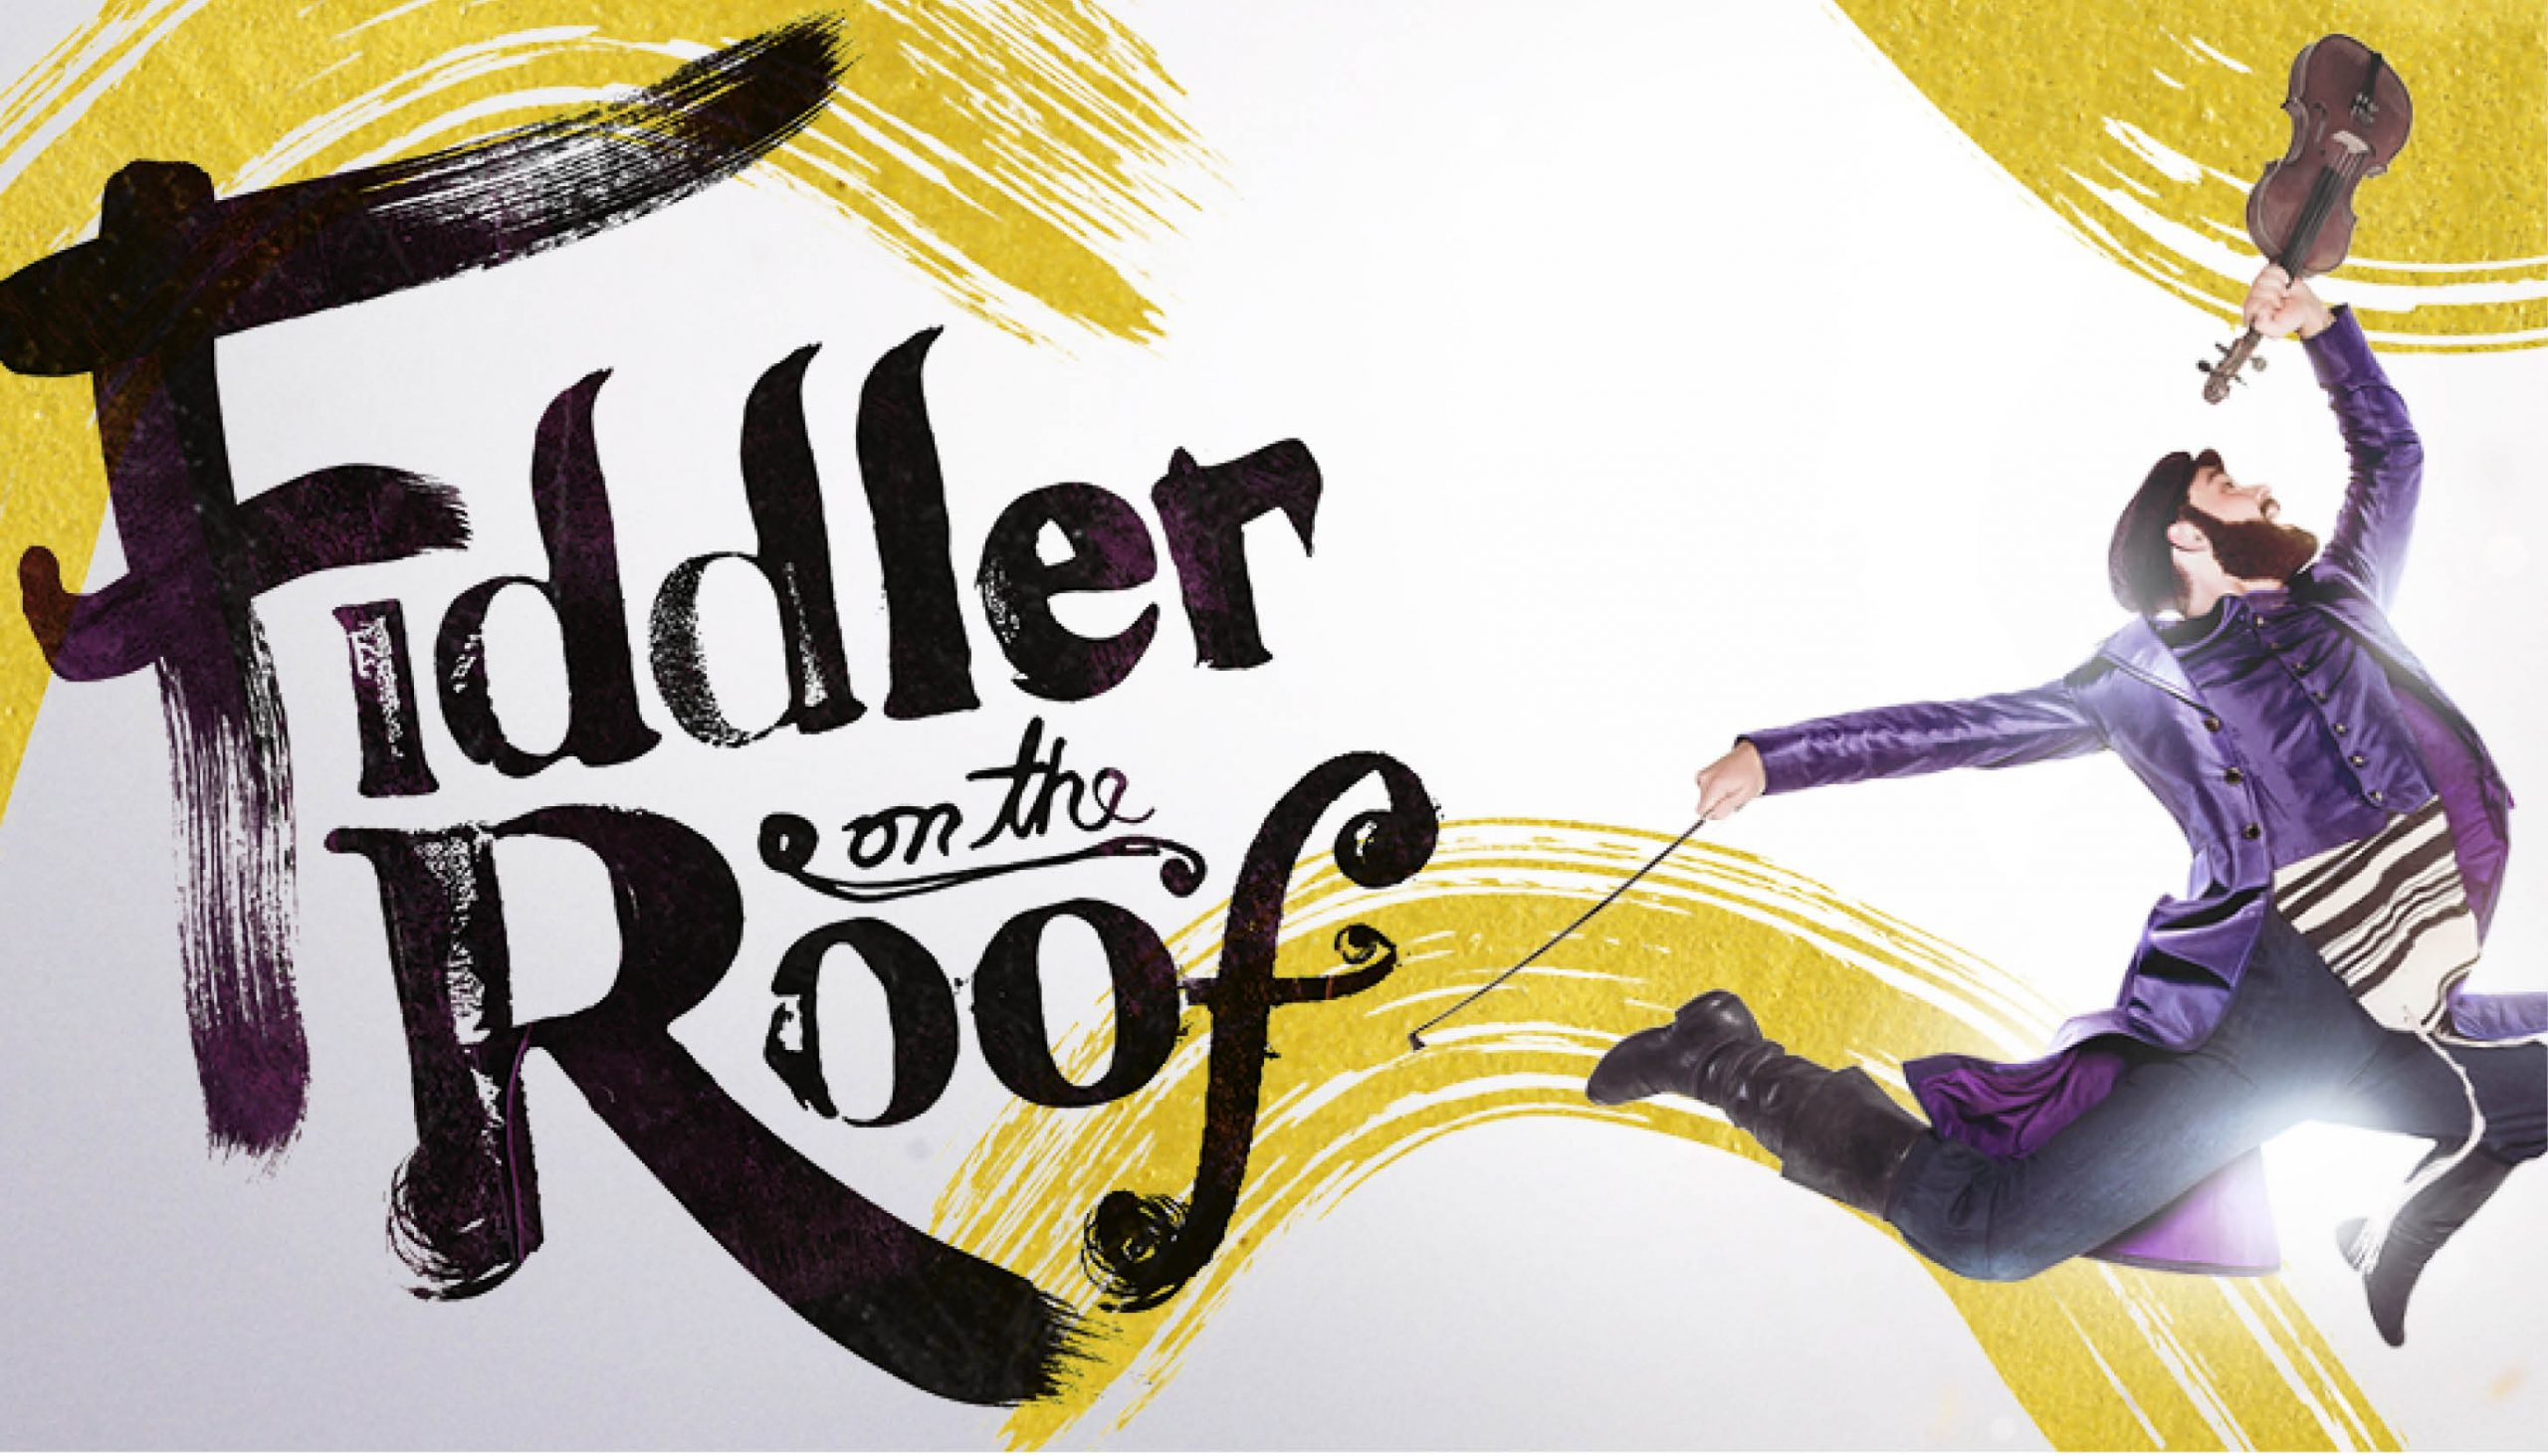 Fiddler on the Roof title with performer in motion